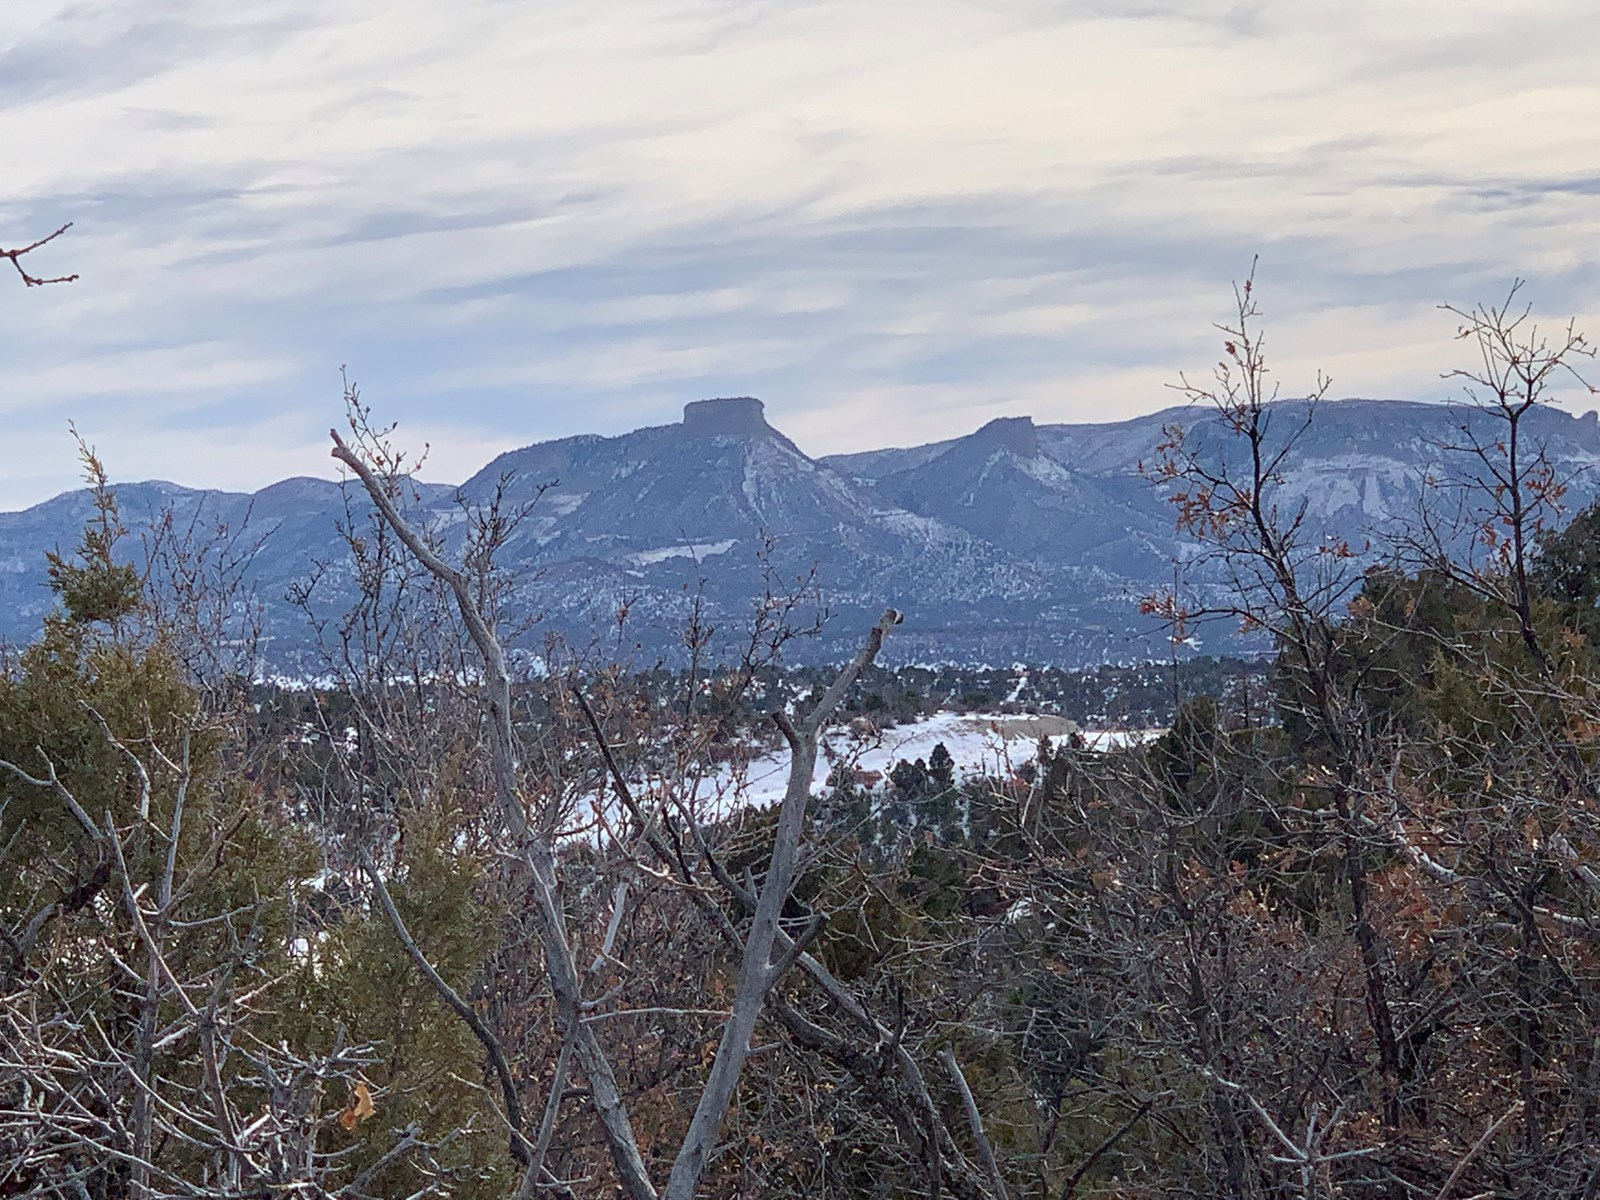 35 ac lot for sale overlooking the Puett Lake in Mancos, CO